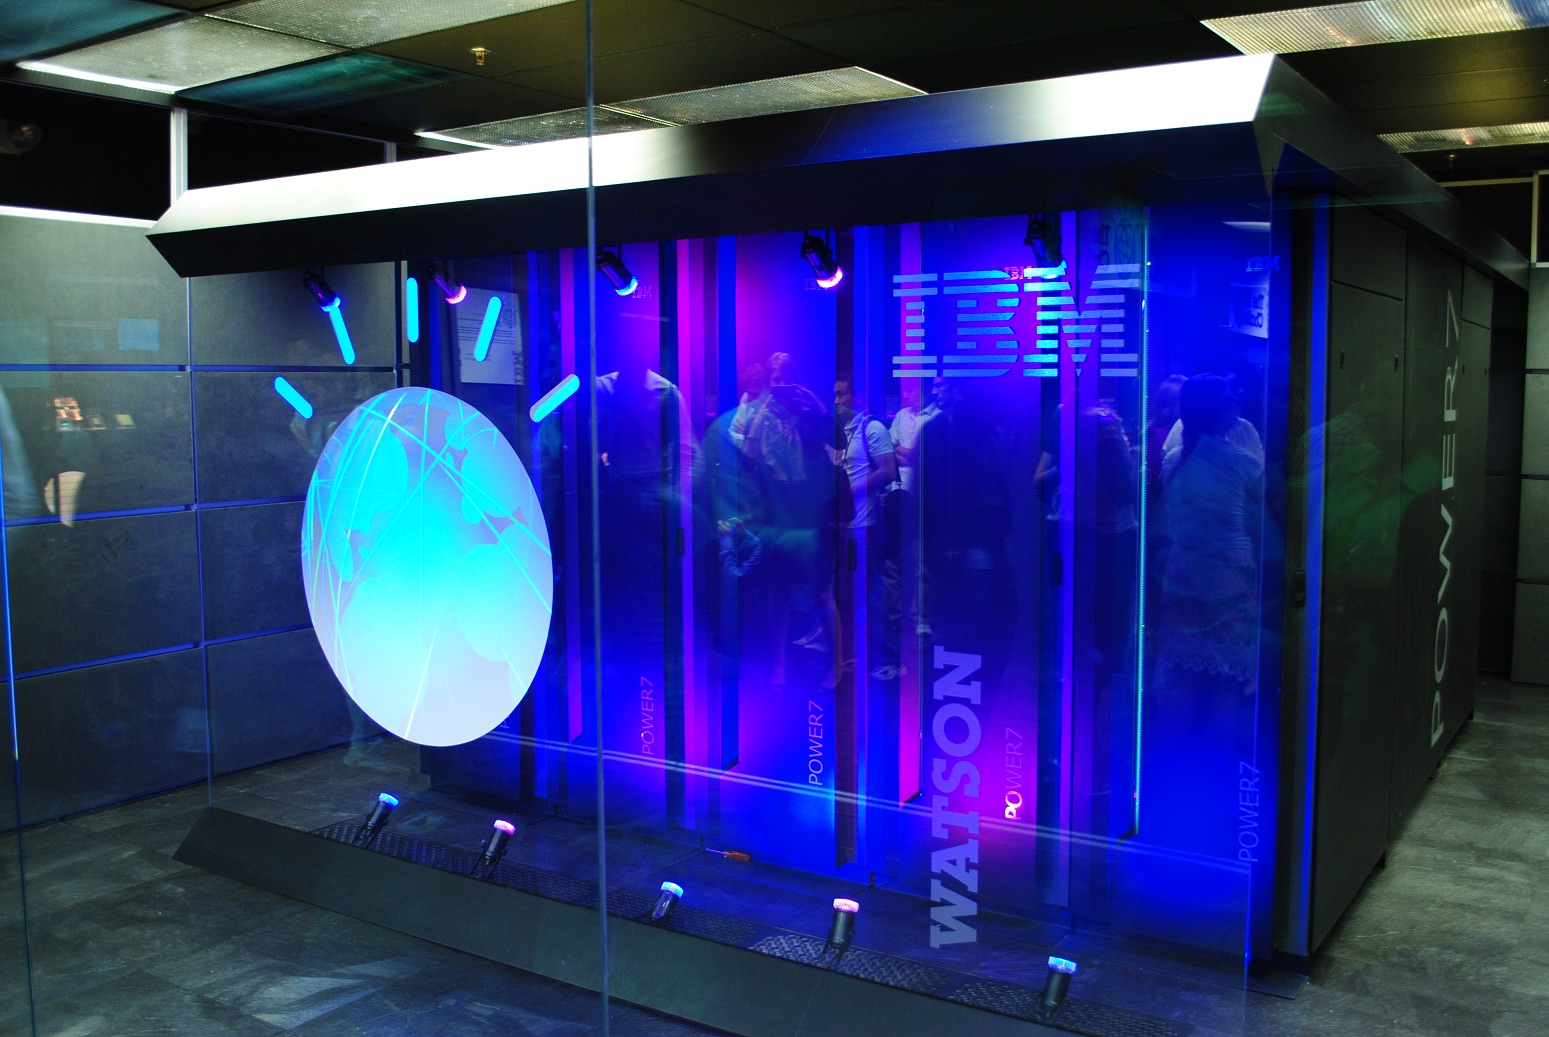 IBM and Siemens team up on population health management